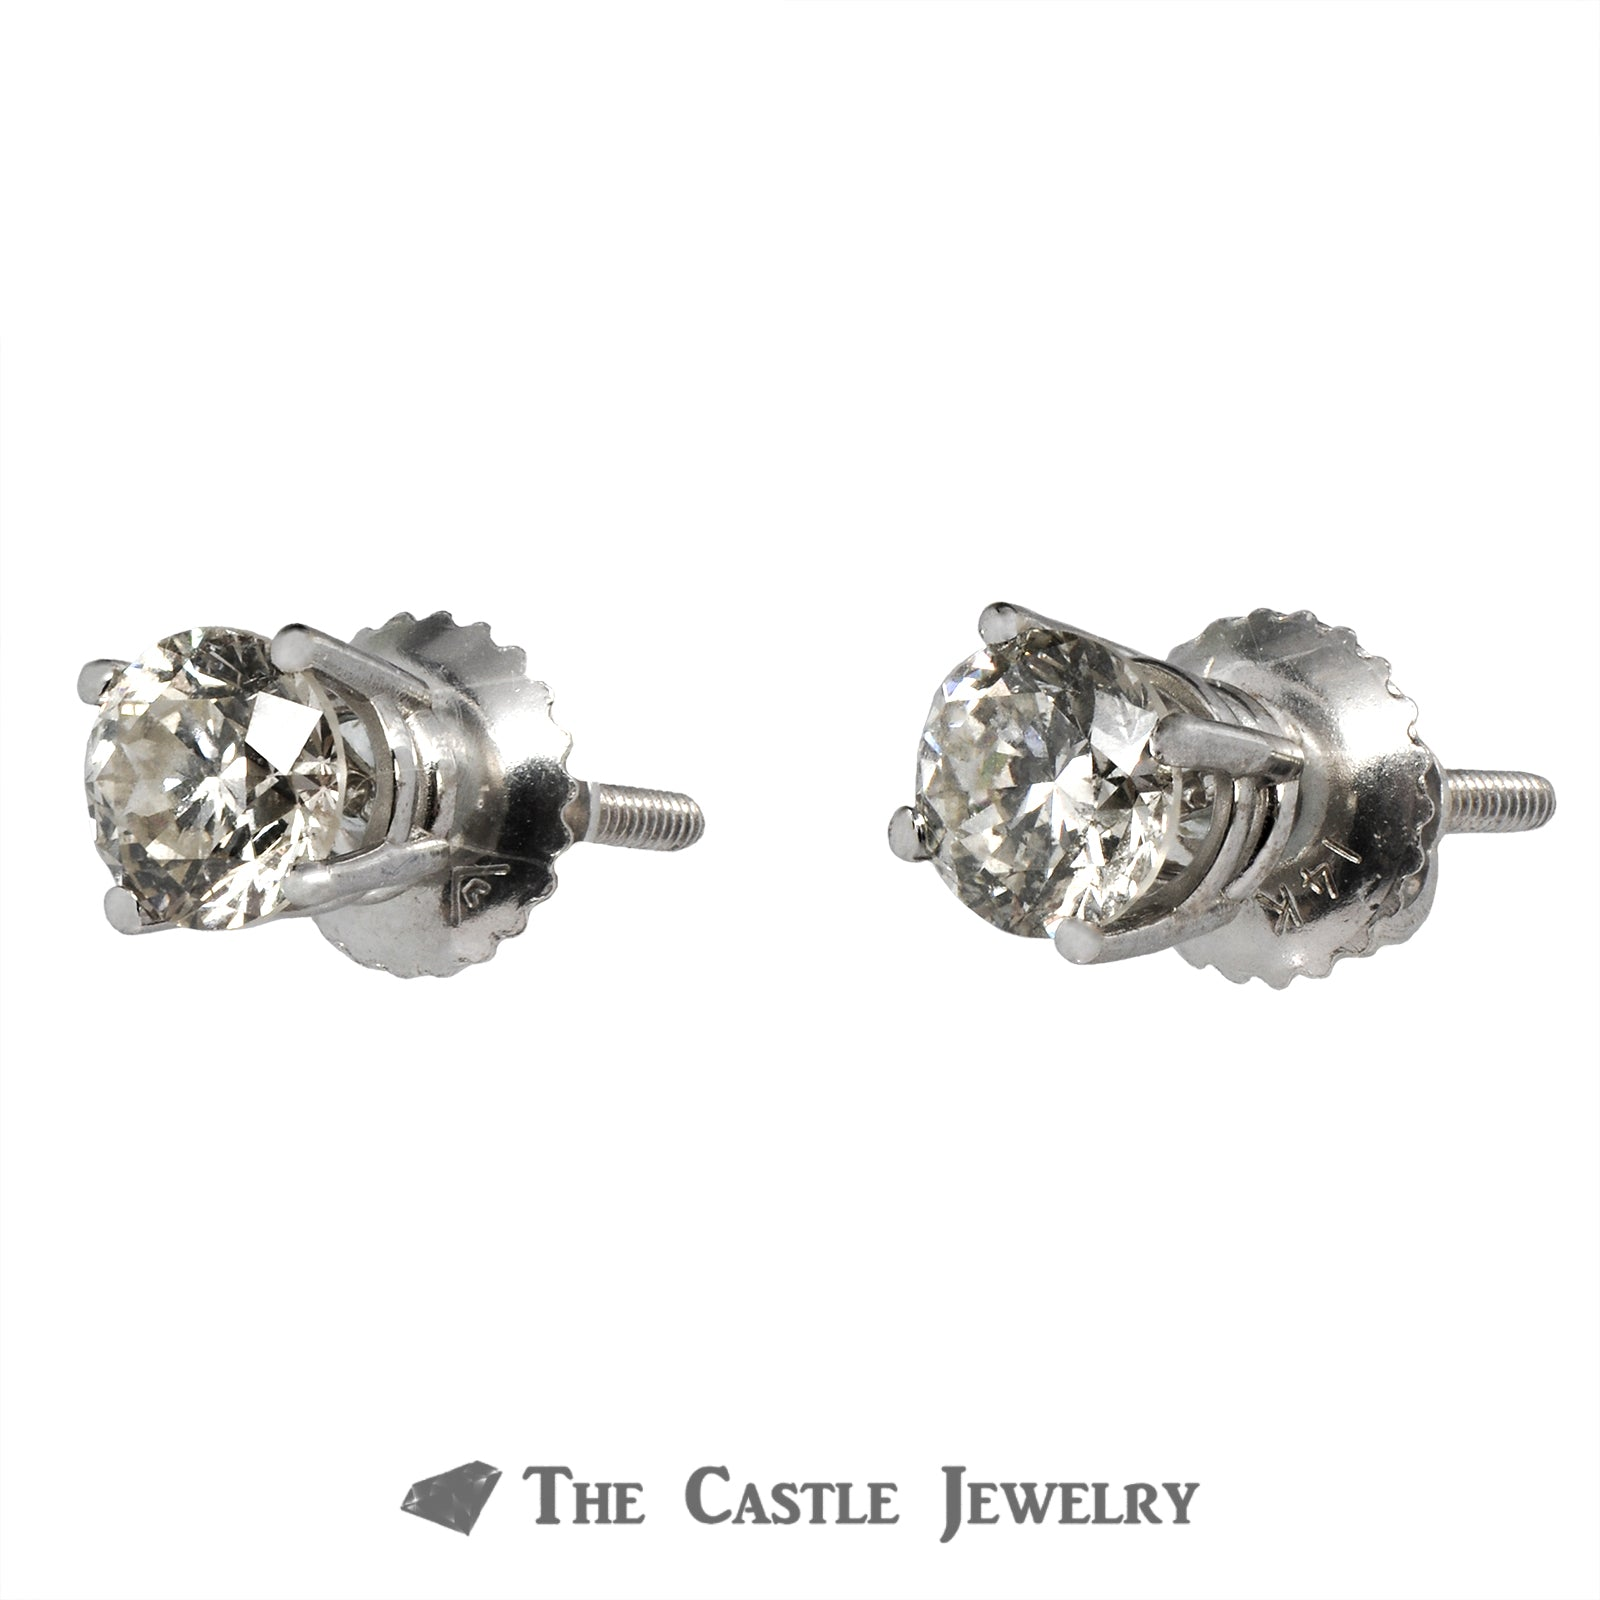 1cttw Round Diamond Stud Earrings with Screw Backs in 14K White Gold